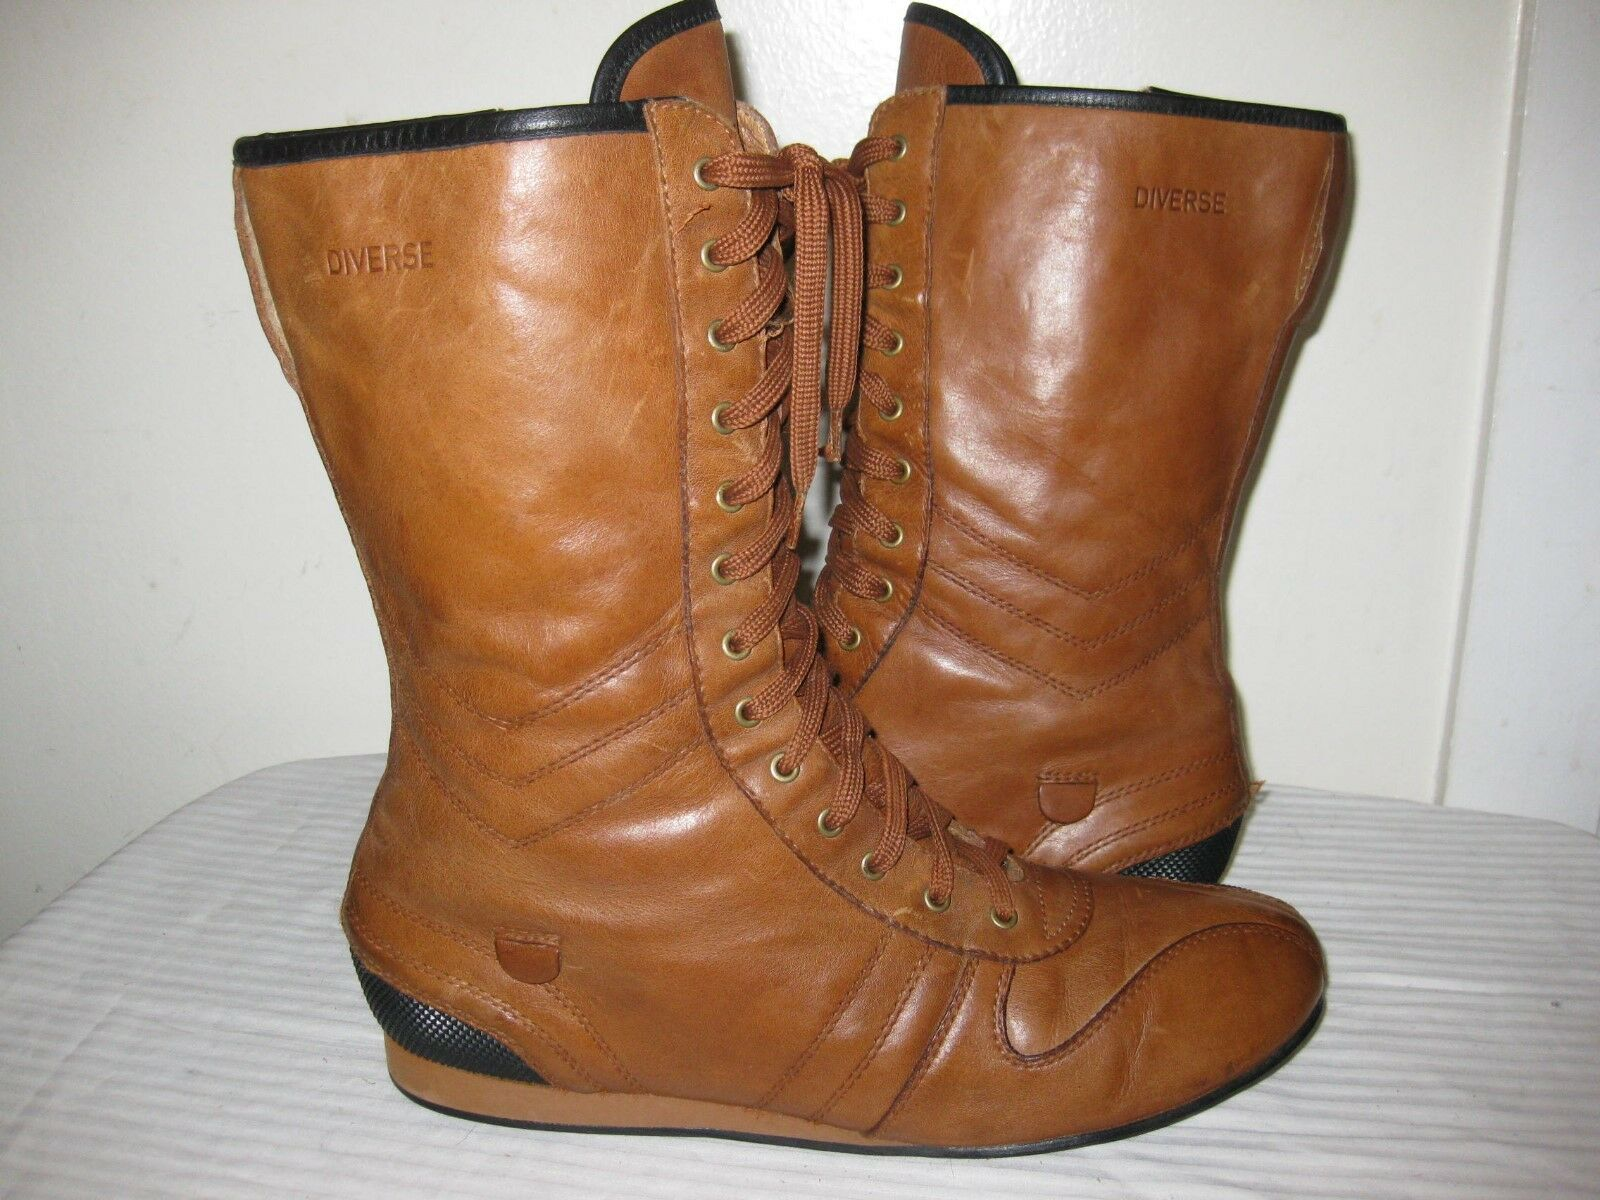 DIVERSE Outdo Leather Brown Combat   Trainers Boots Men shoes Size 41   9.5